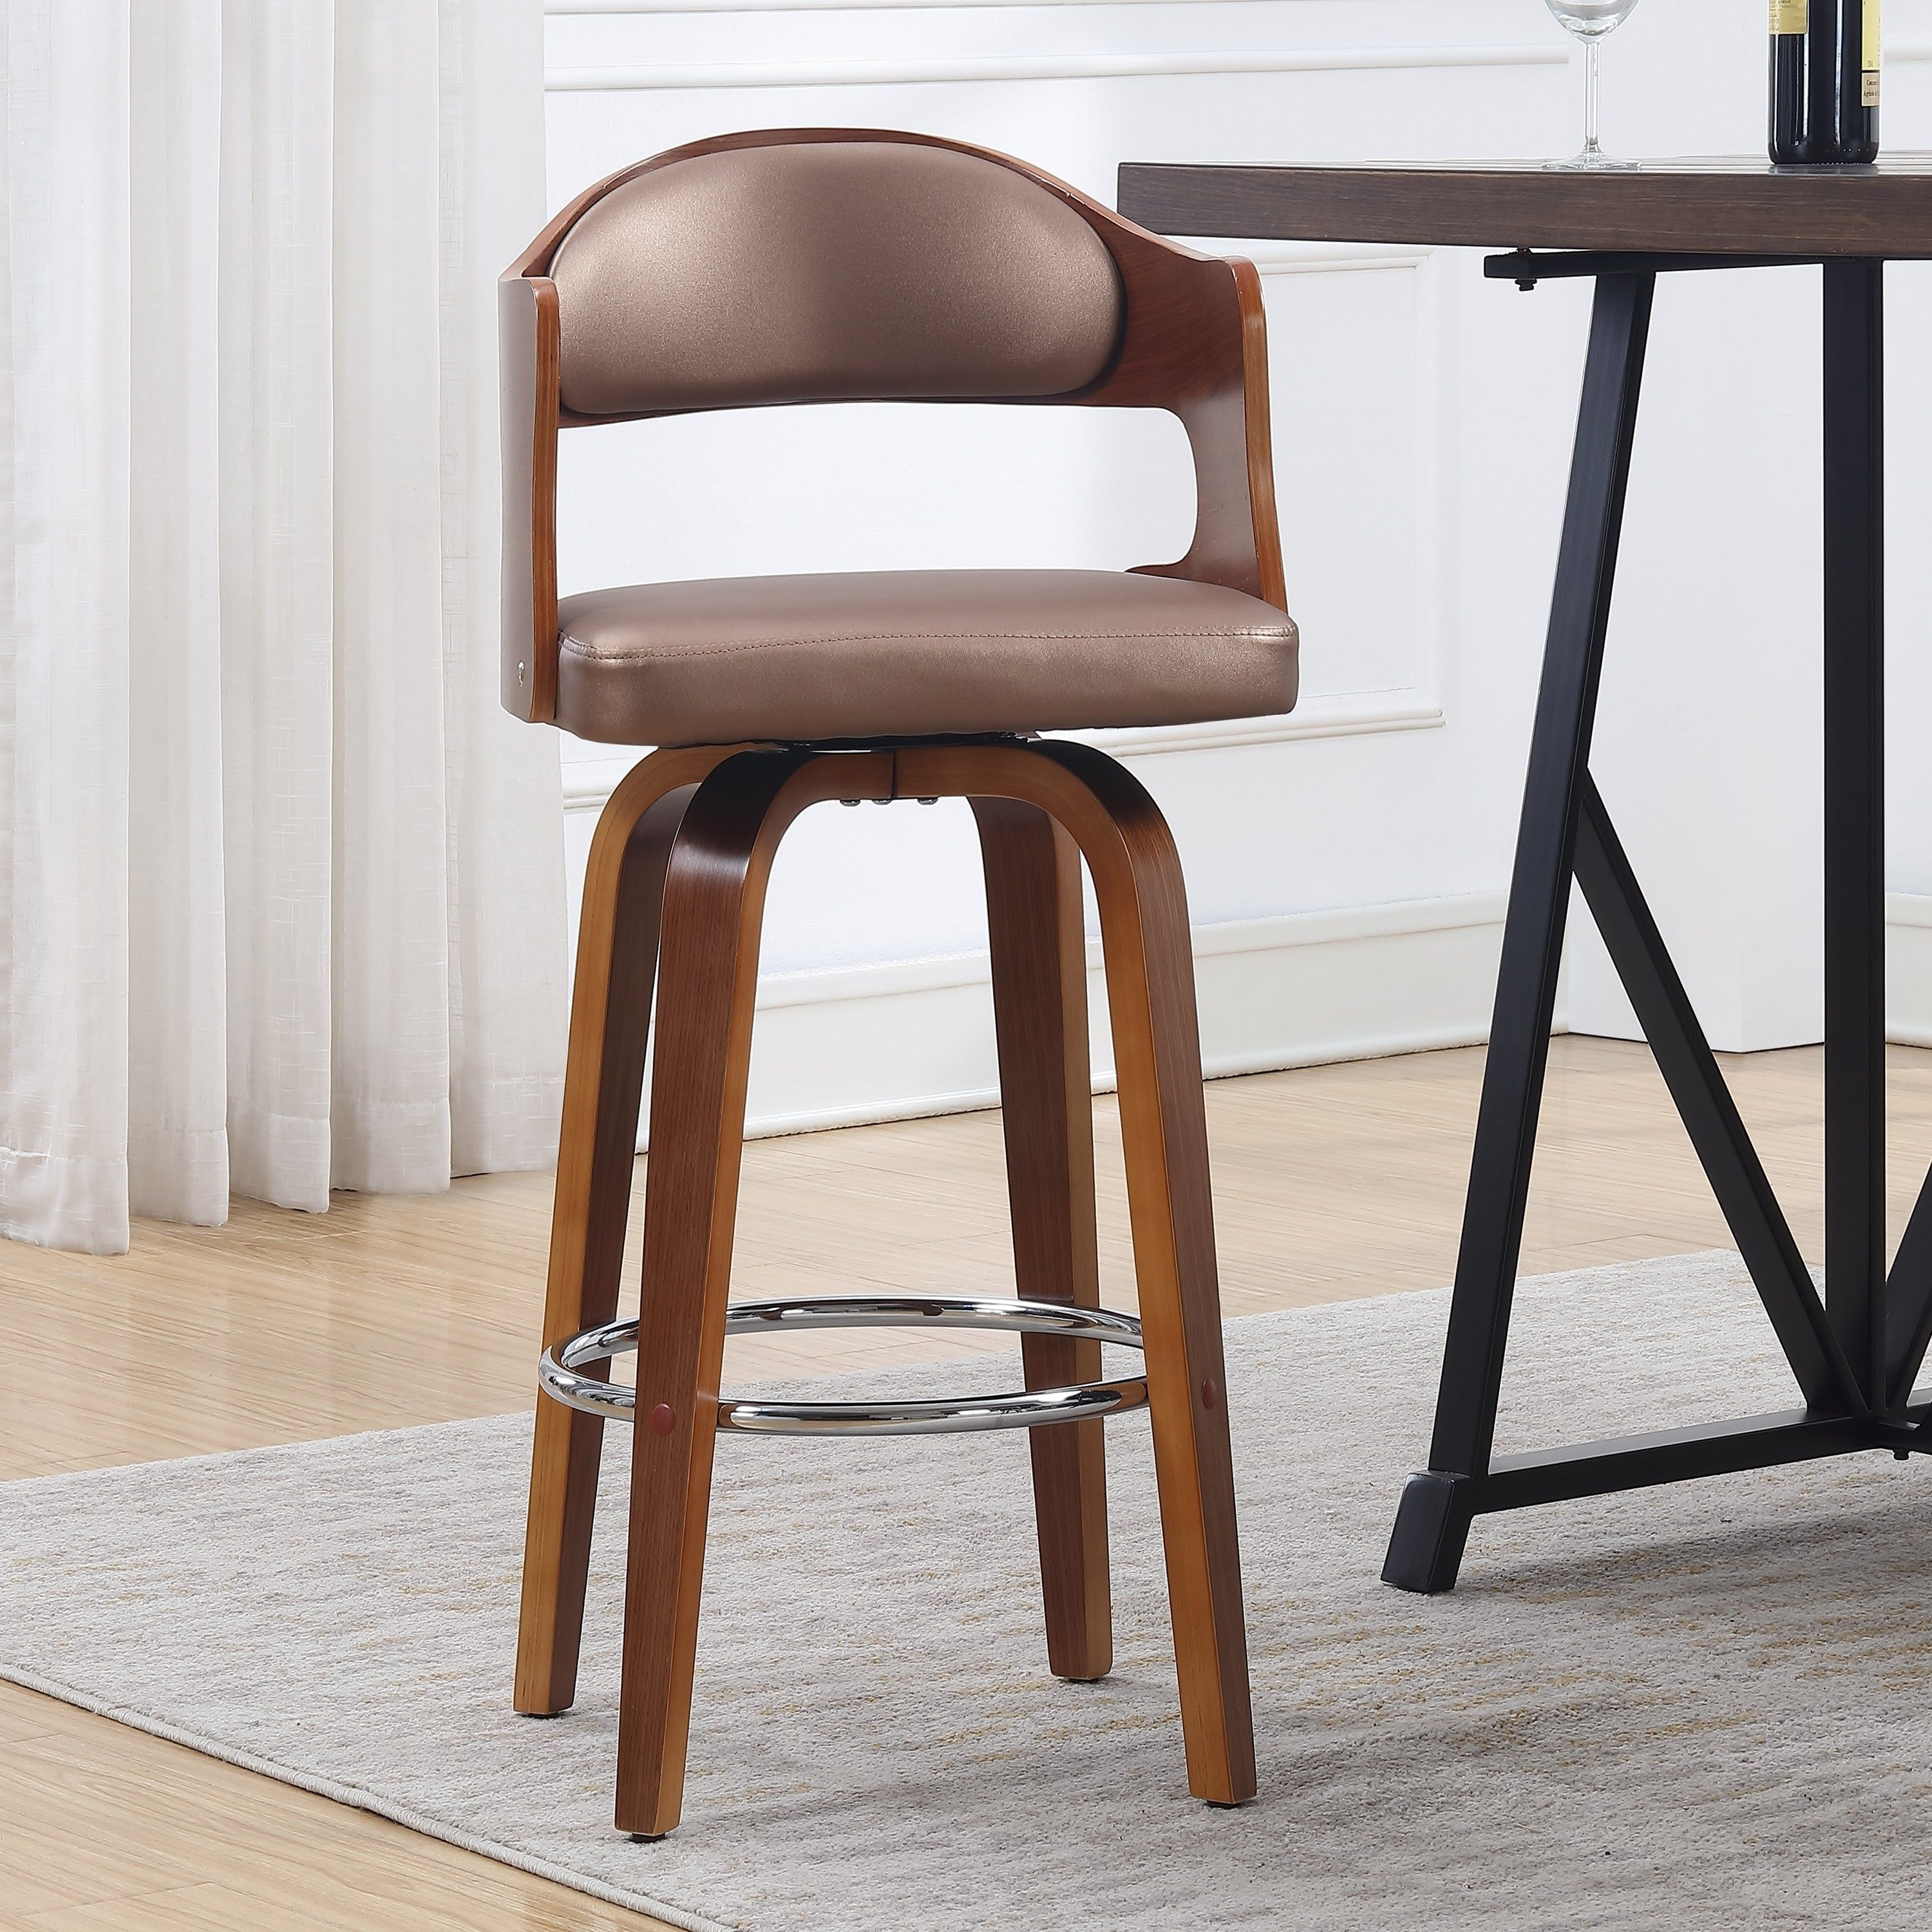 Wood And Faux Leather Mid Century 27 Inch Swivel Counter Stool Set